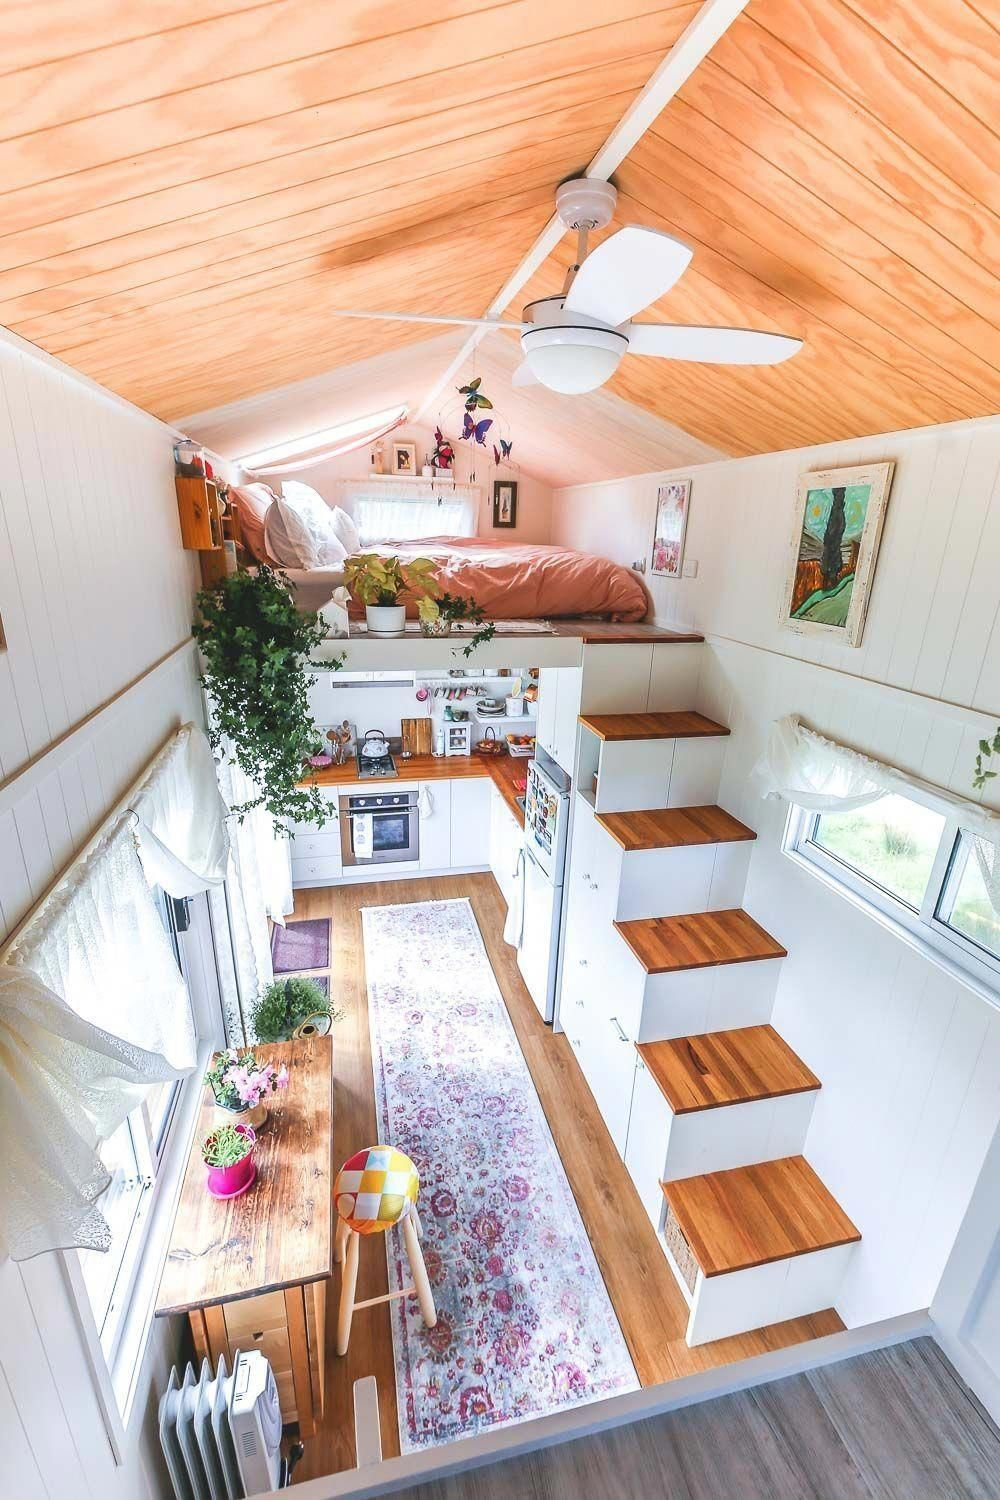 20 Best Tiny Houses Design Ideas For Inspiration To Try Tinycabin Tiny House Interior Design Tiny House Design Tiny House Interior